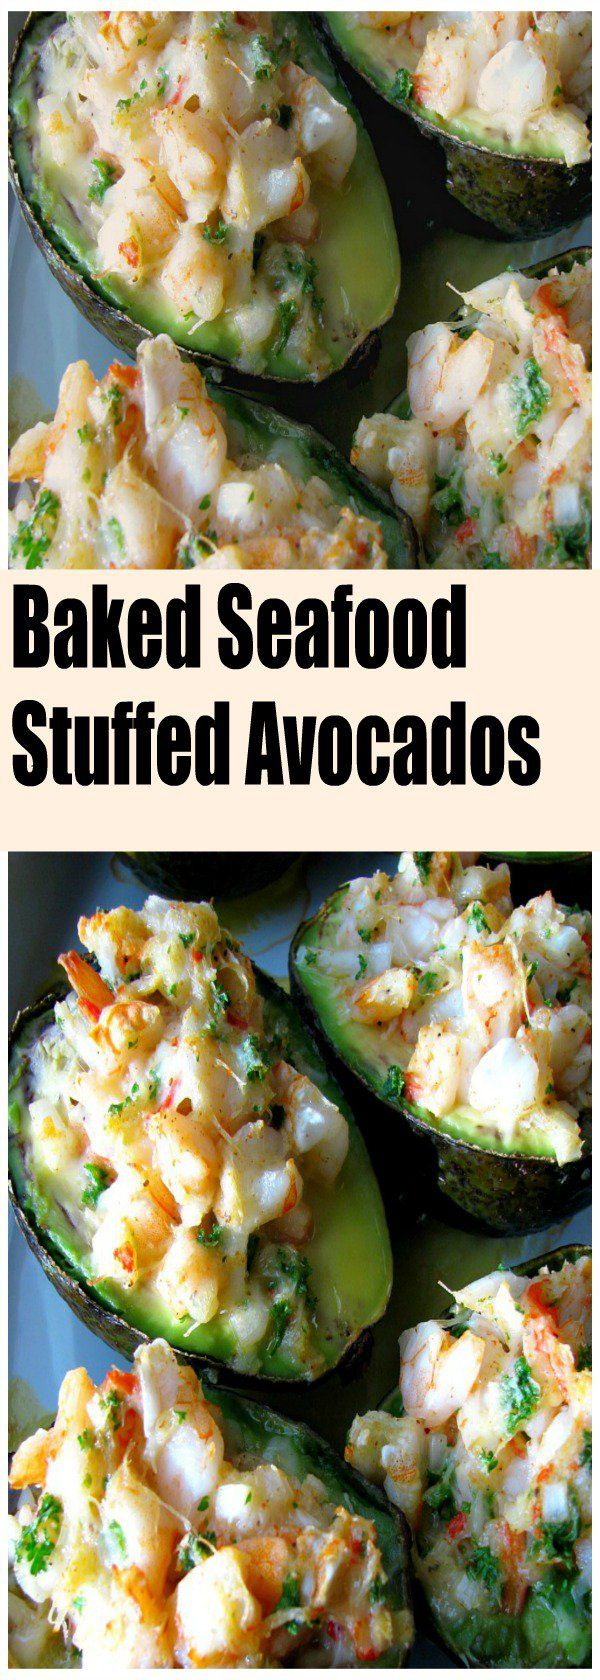 Baked Seafood Stuffed Avocados #seafooddishes